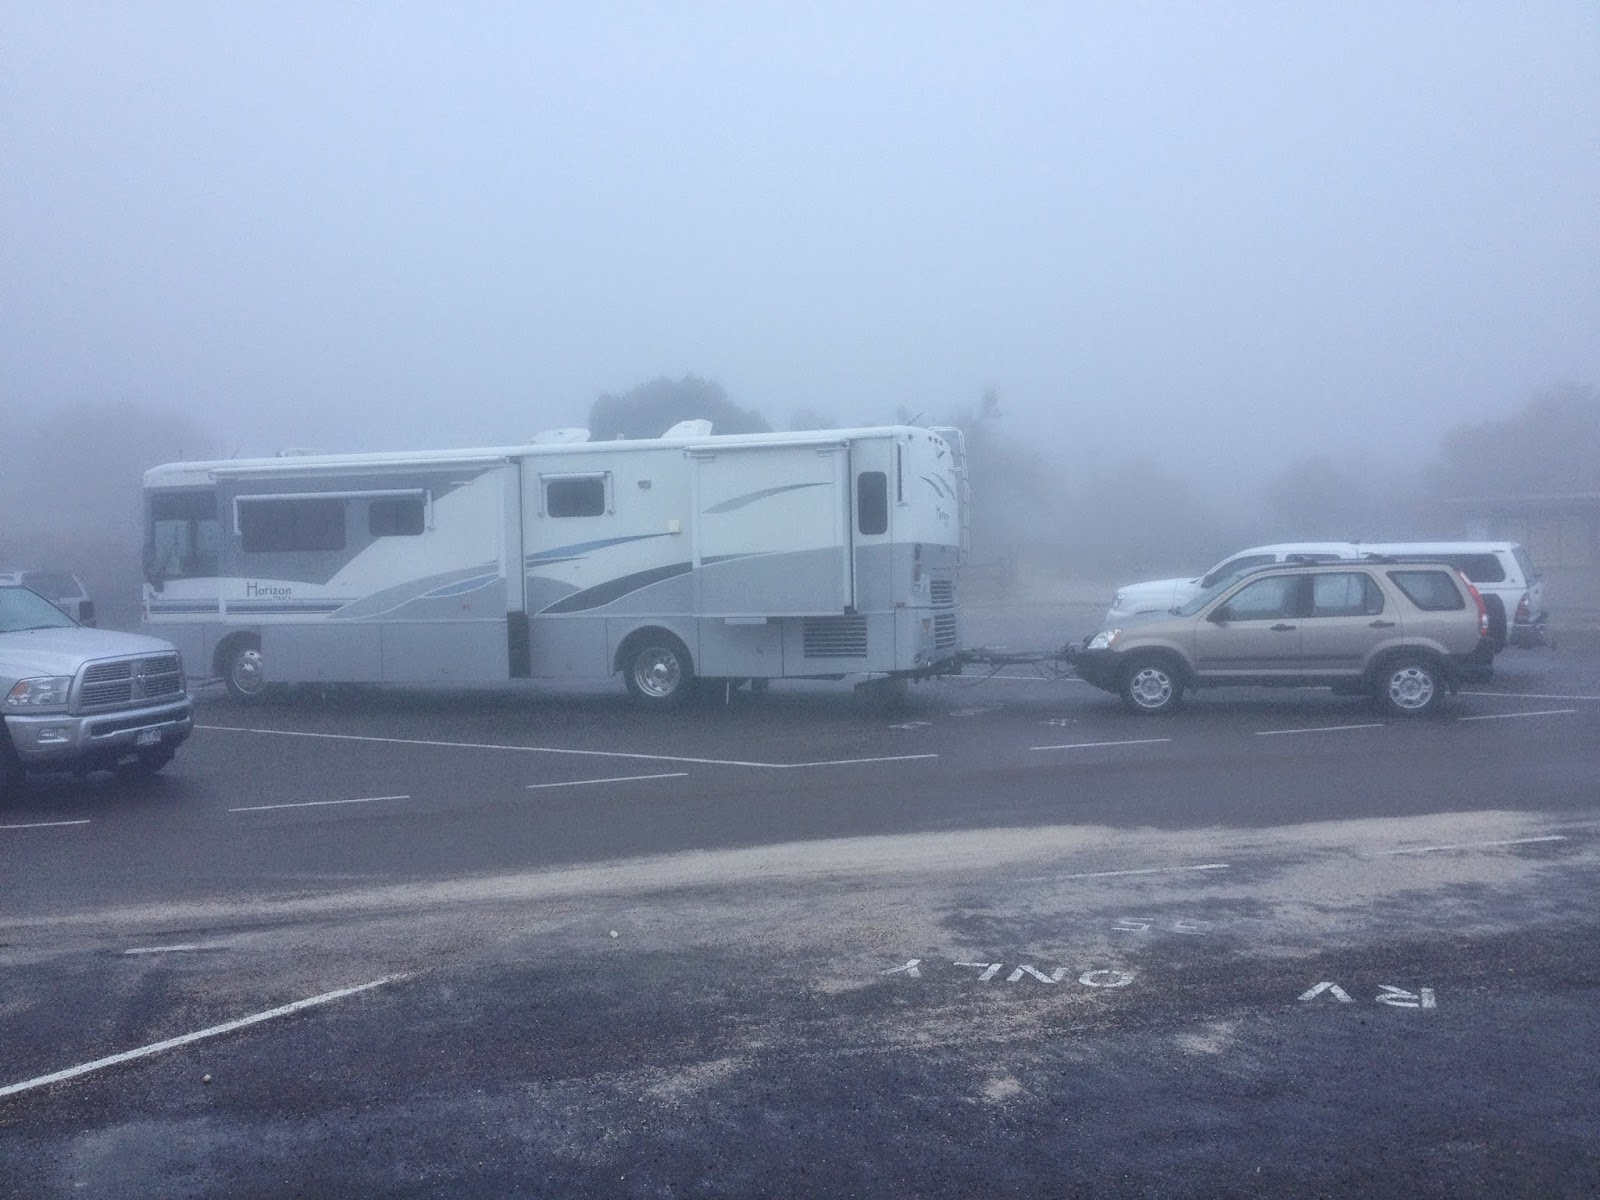 Motorhome enshrouded in fog at Guadalupe Mountains National Park